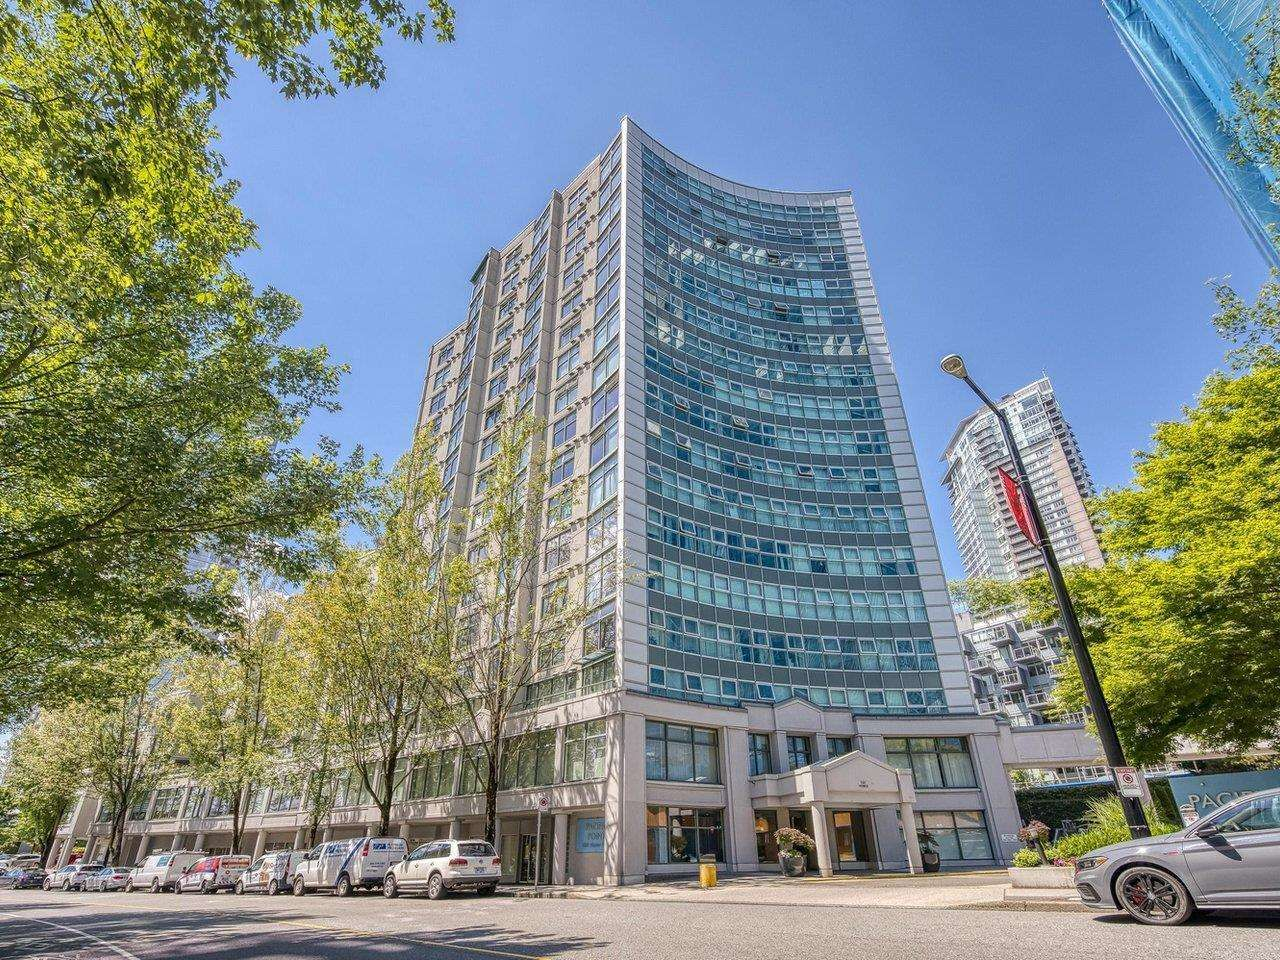 Main Photo: B101 1331 HOMER Street in Vancouver: Yaletown Condo for sale (Vancouver West)  : MLS®# R2593856